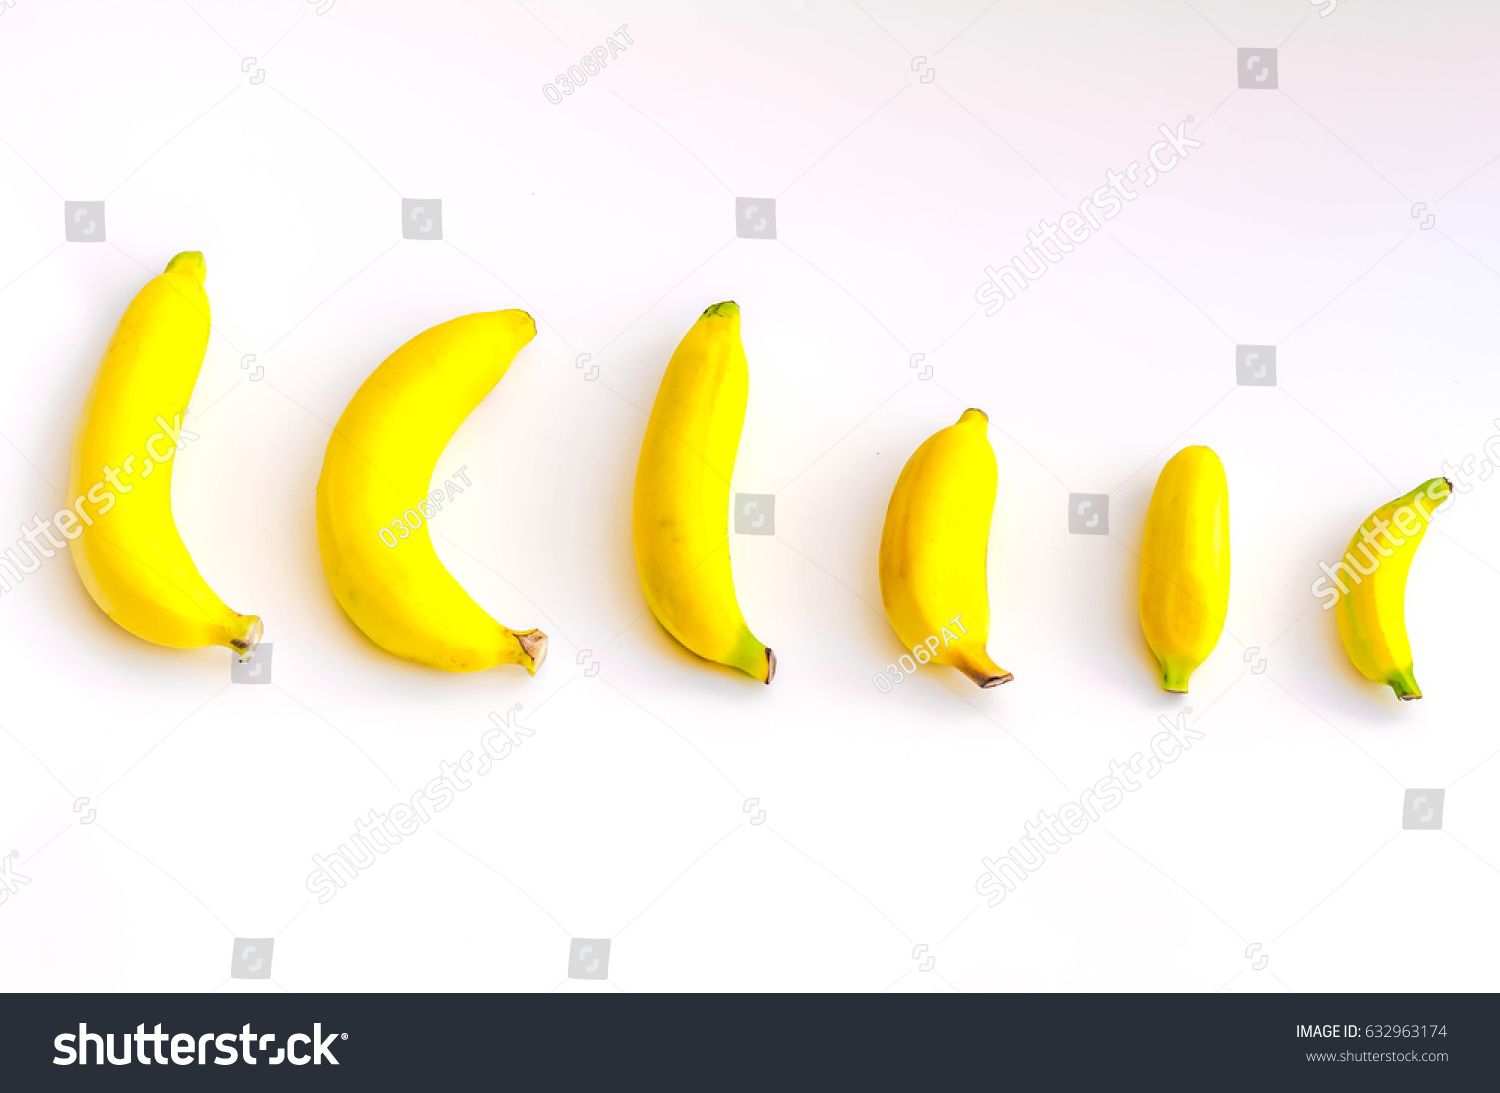 Banana shaped penis